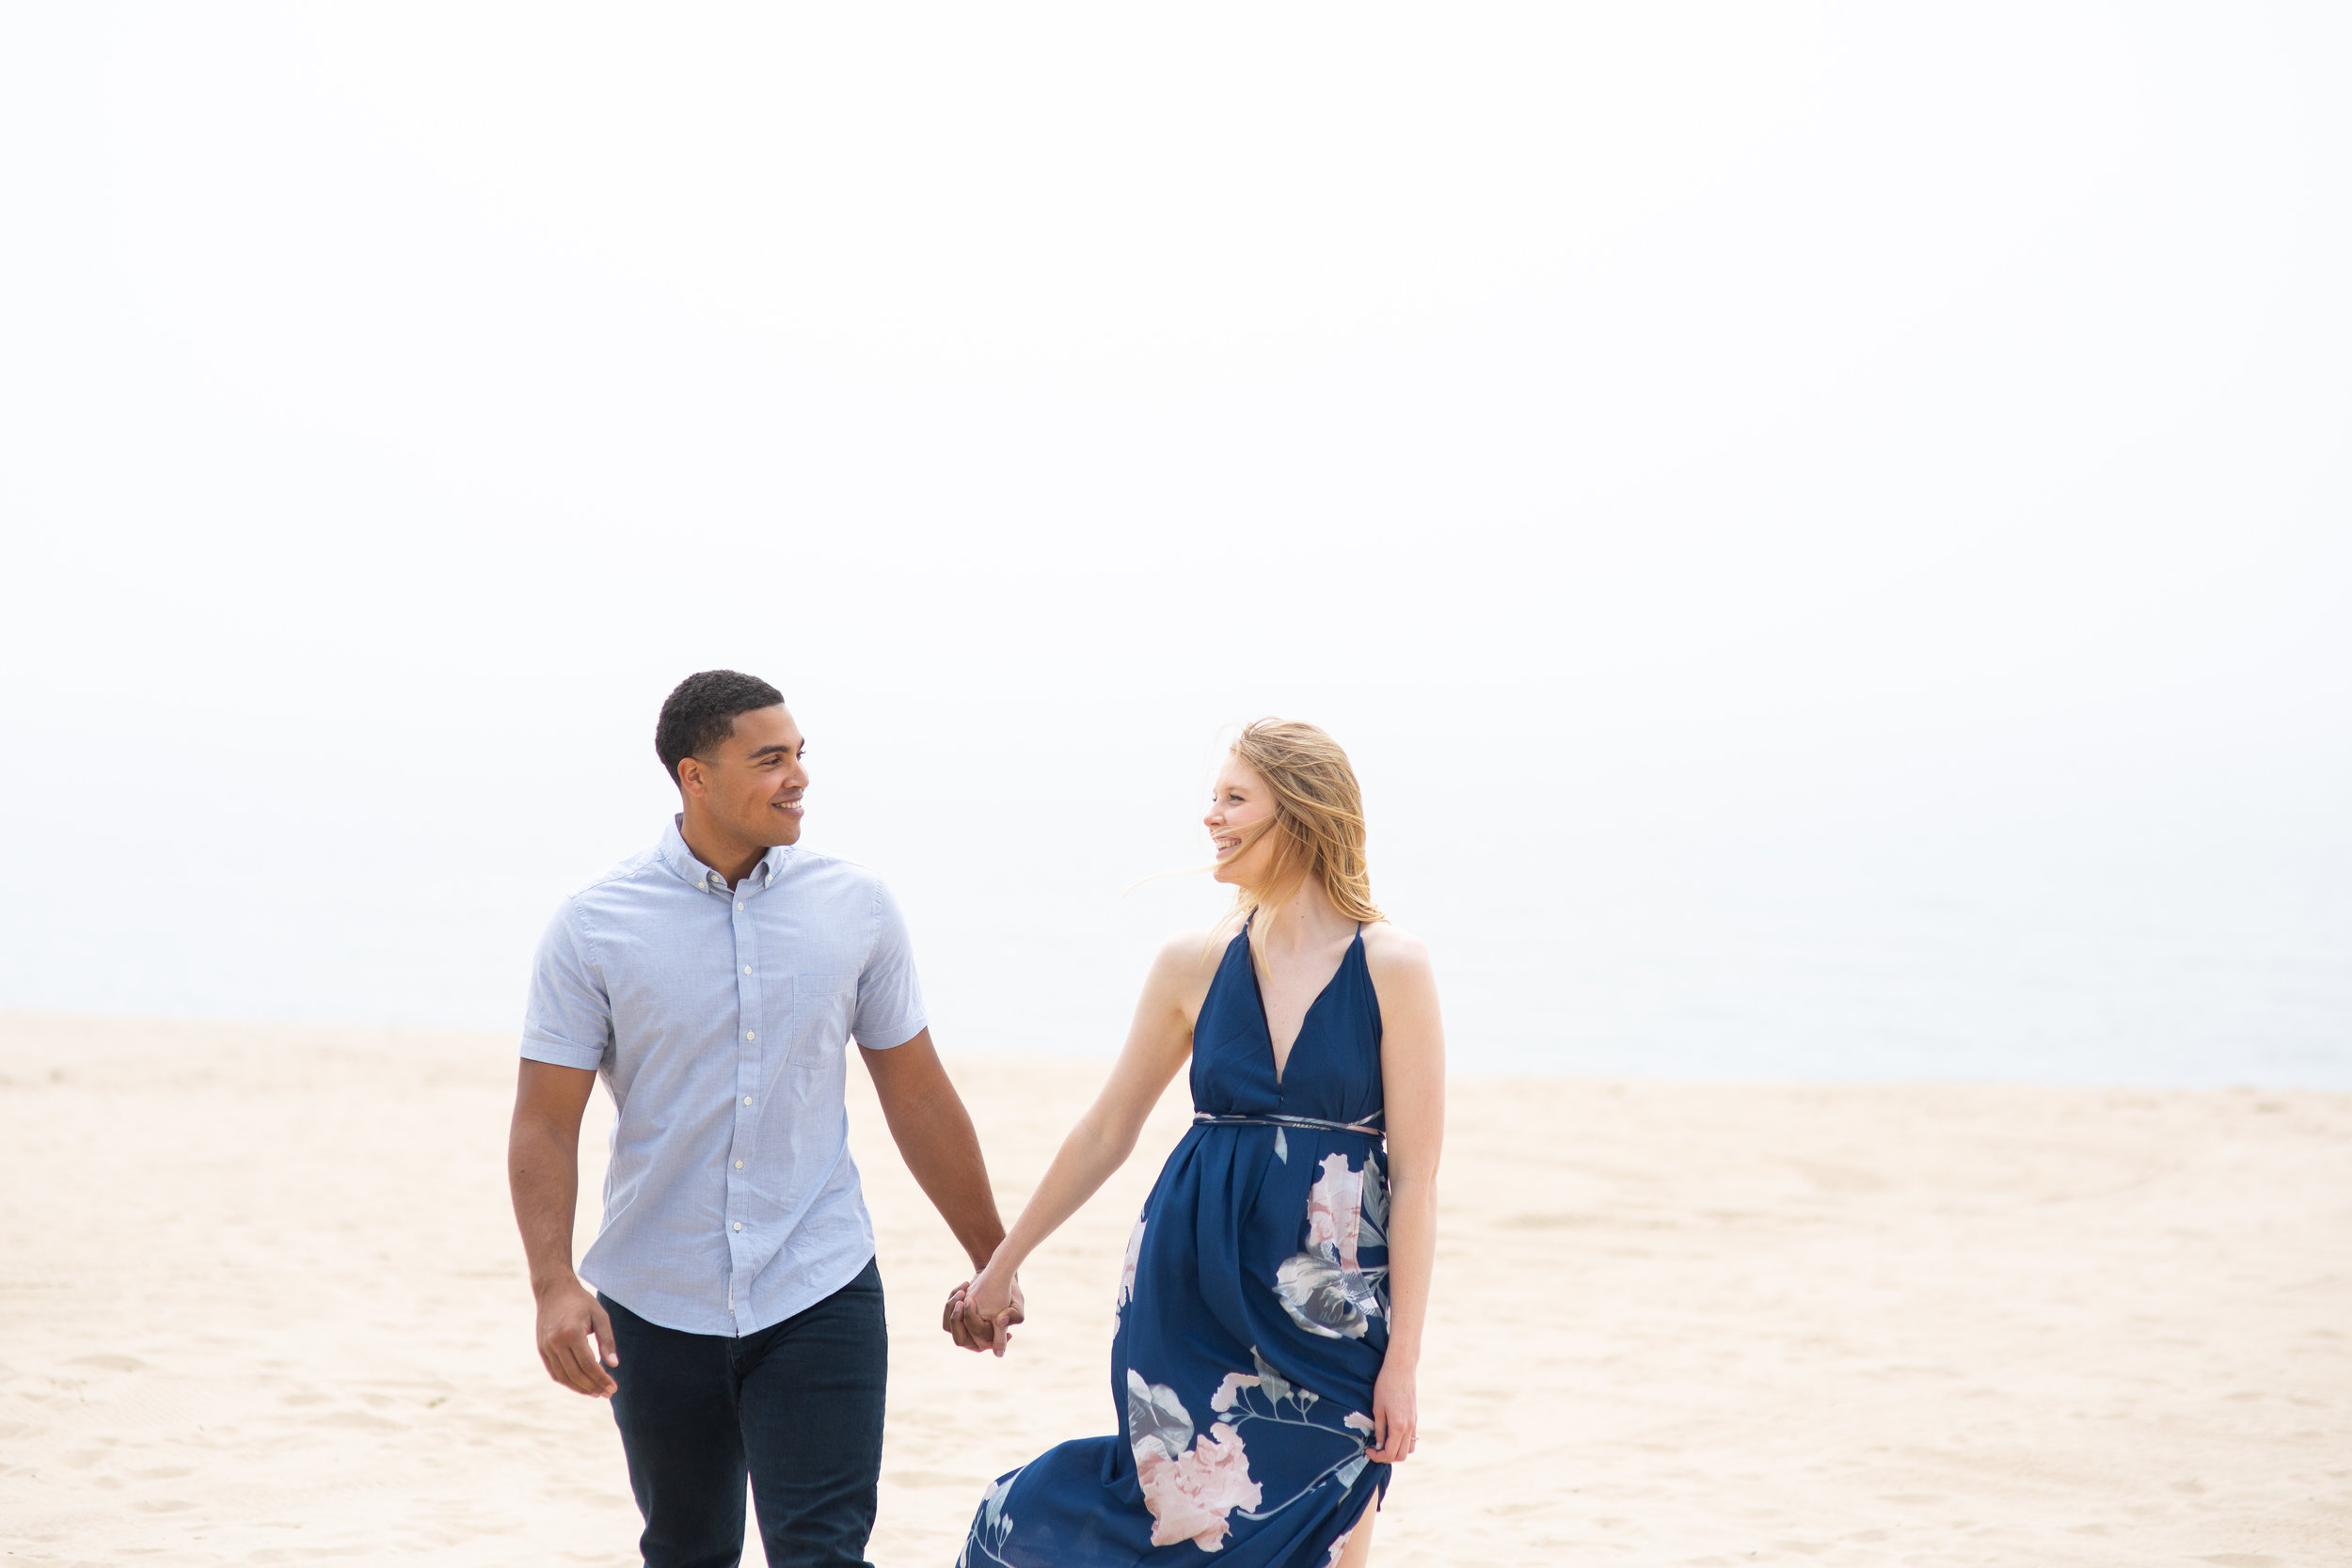 Honeymoon Quiz - Where should you go on your honeymoon? Take our fun quiz to discover the best location for YOU!Click HERE